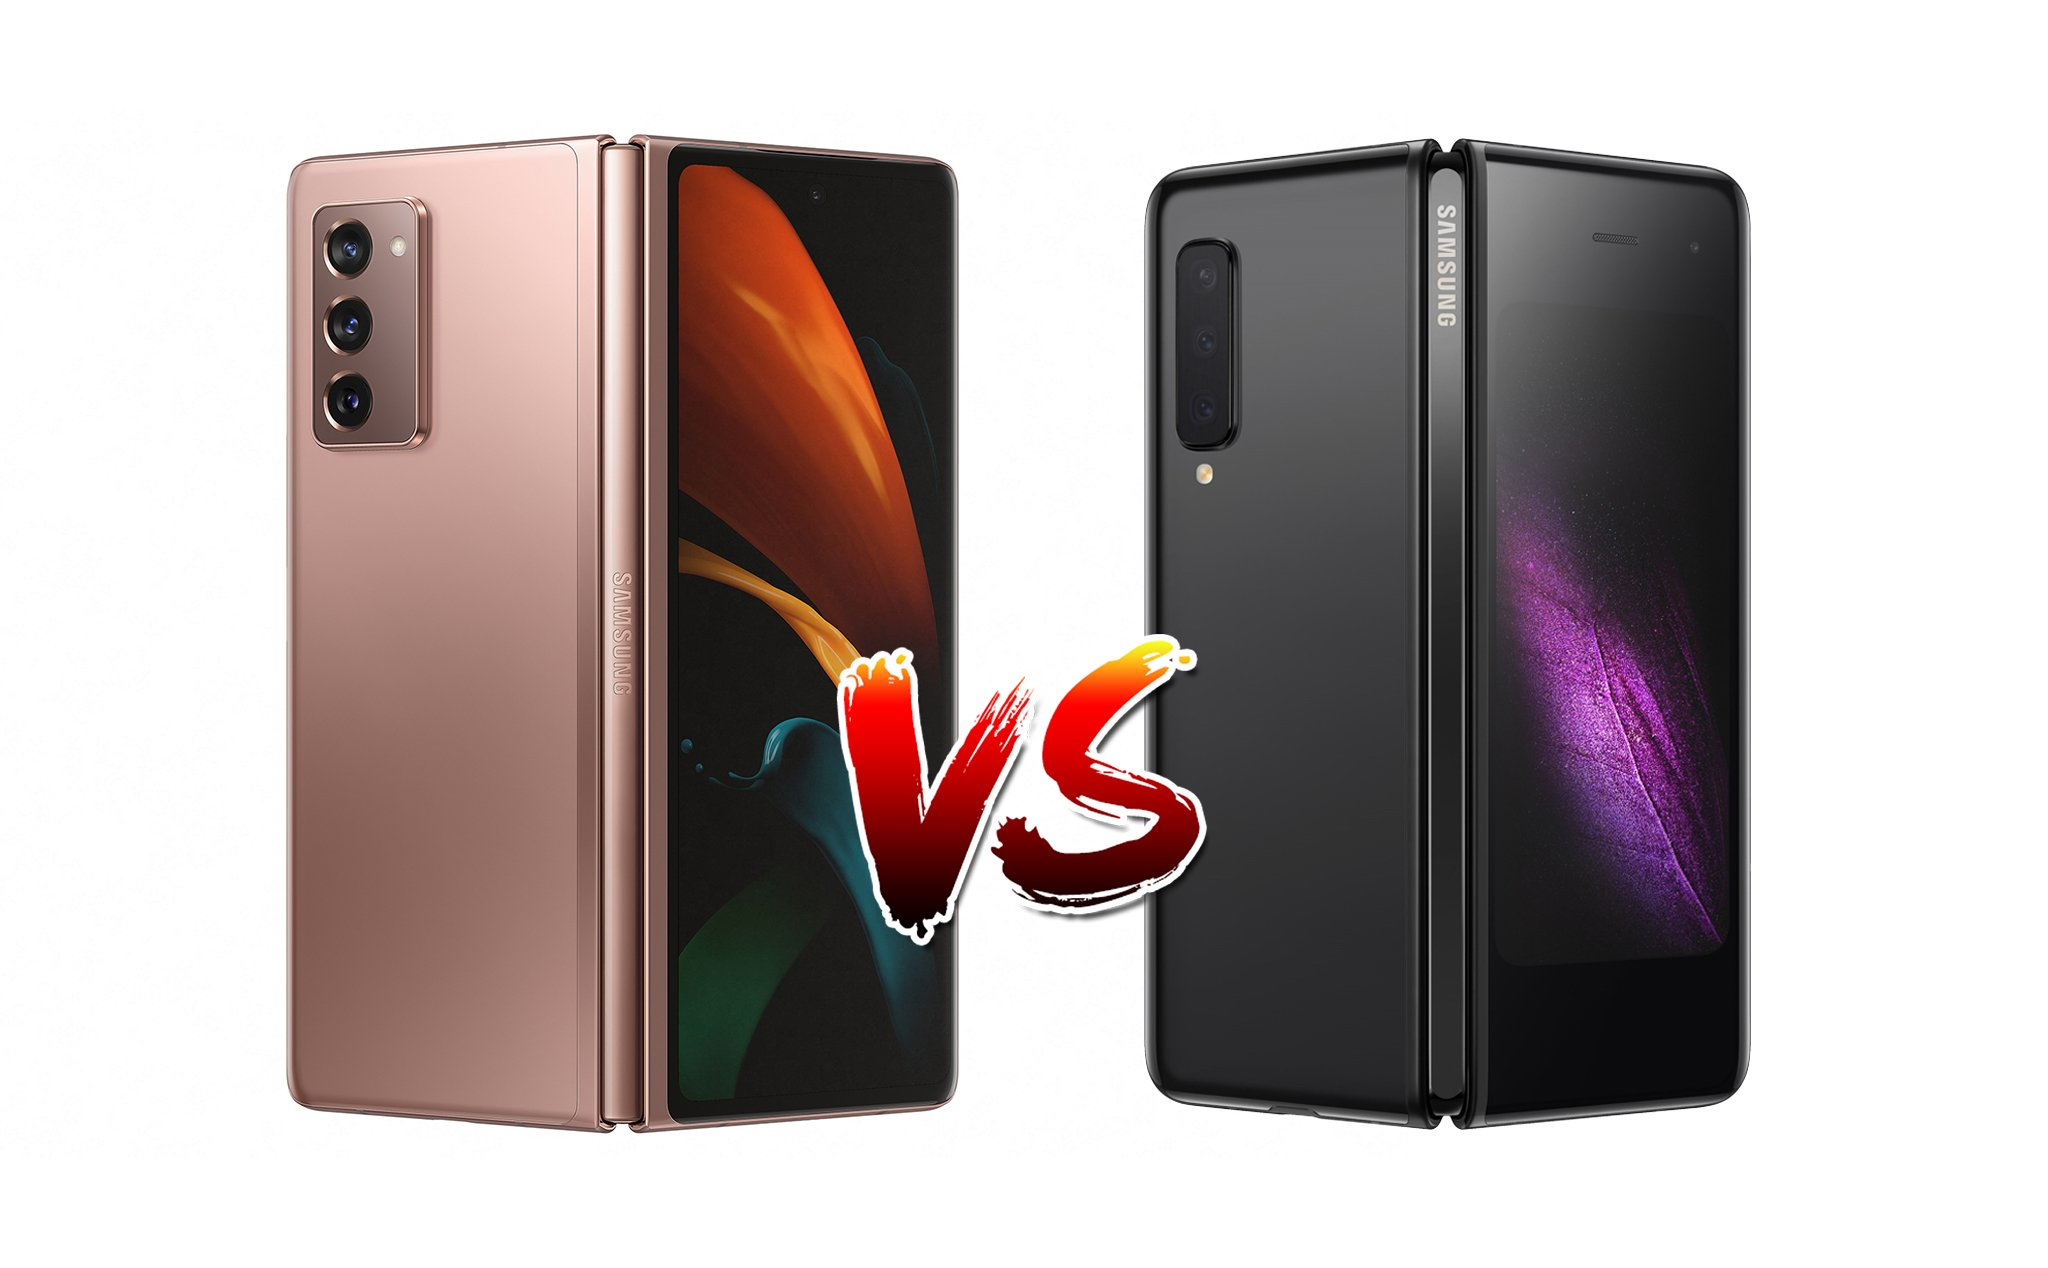 Samsung Galaxy Z Fold 2 vs Samsung Galaxy Fold: What's the Difference?